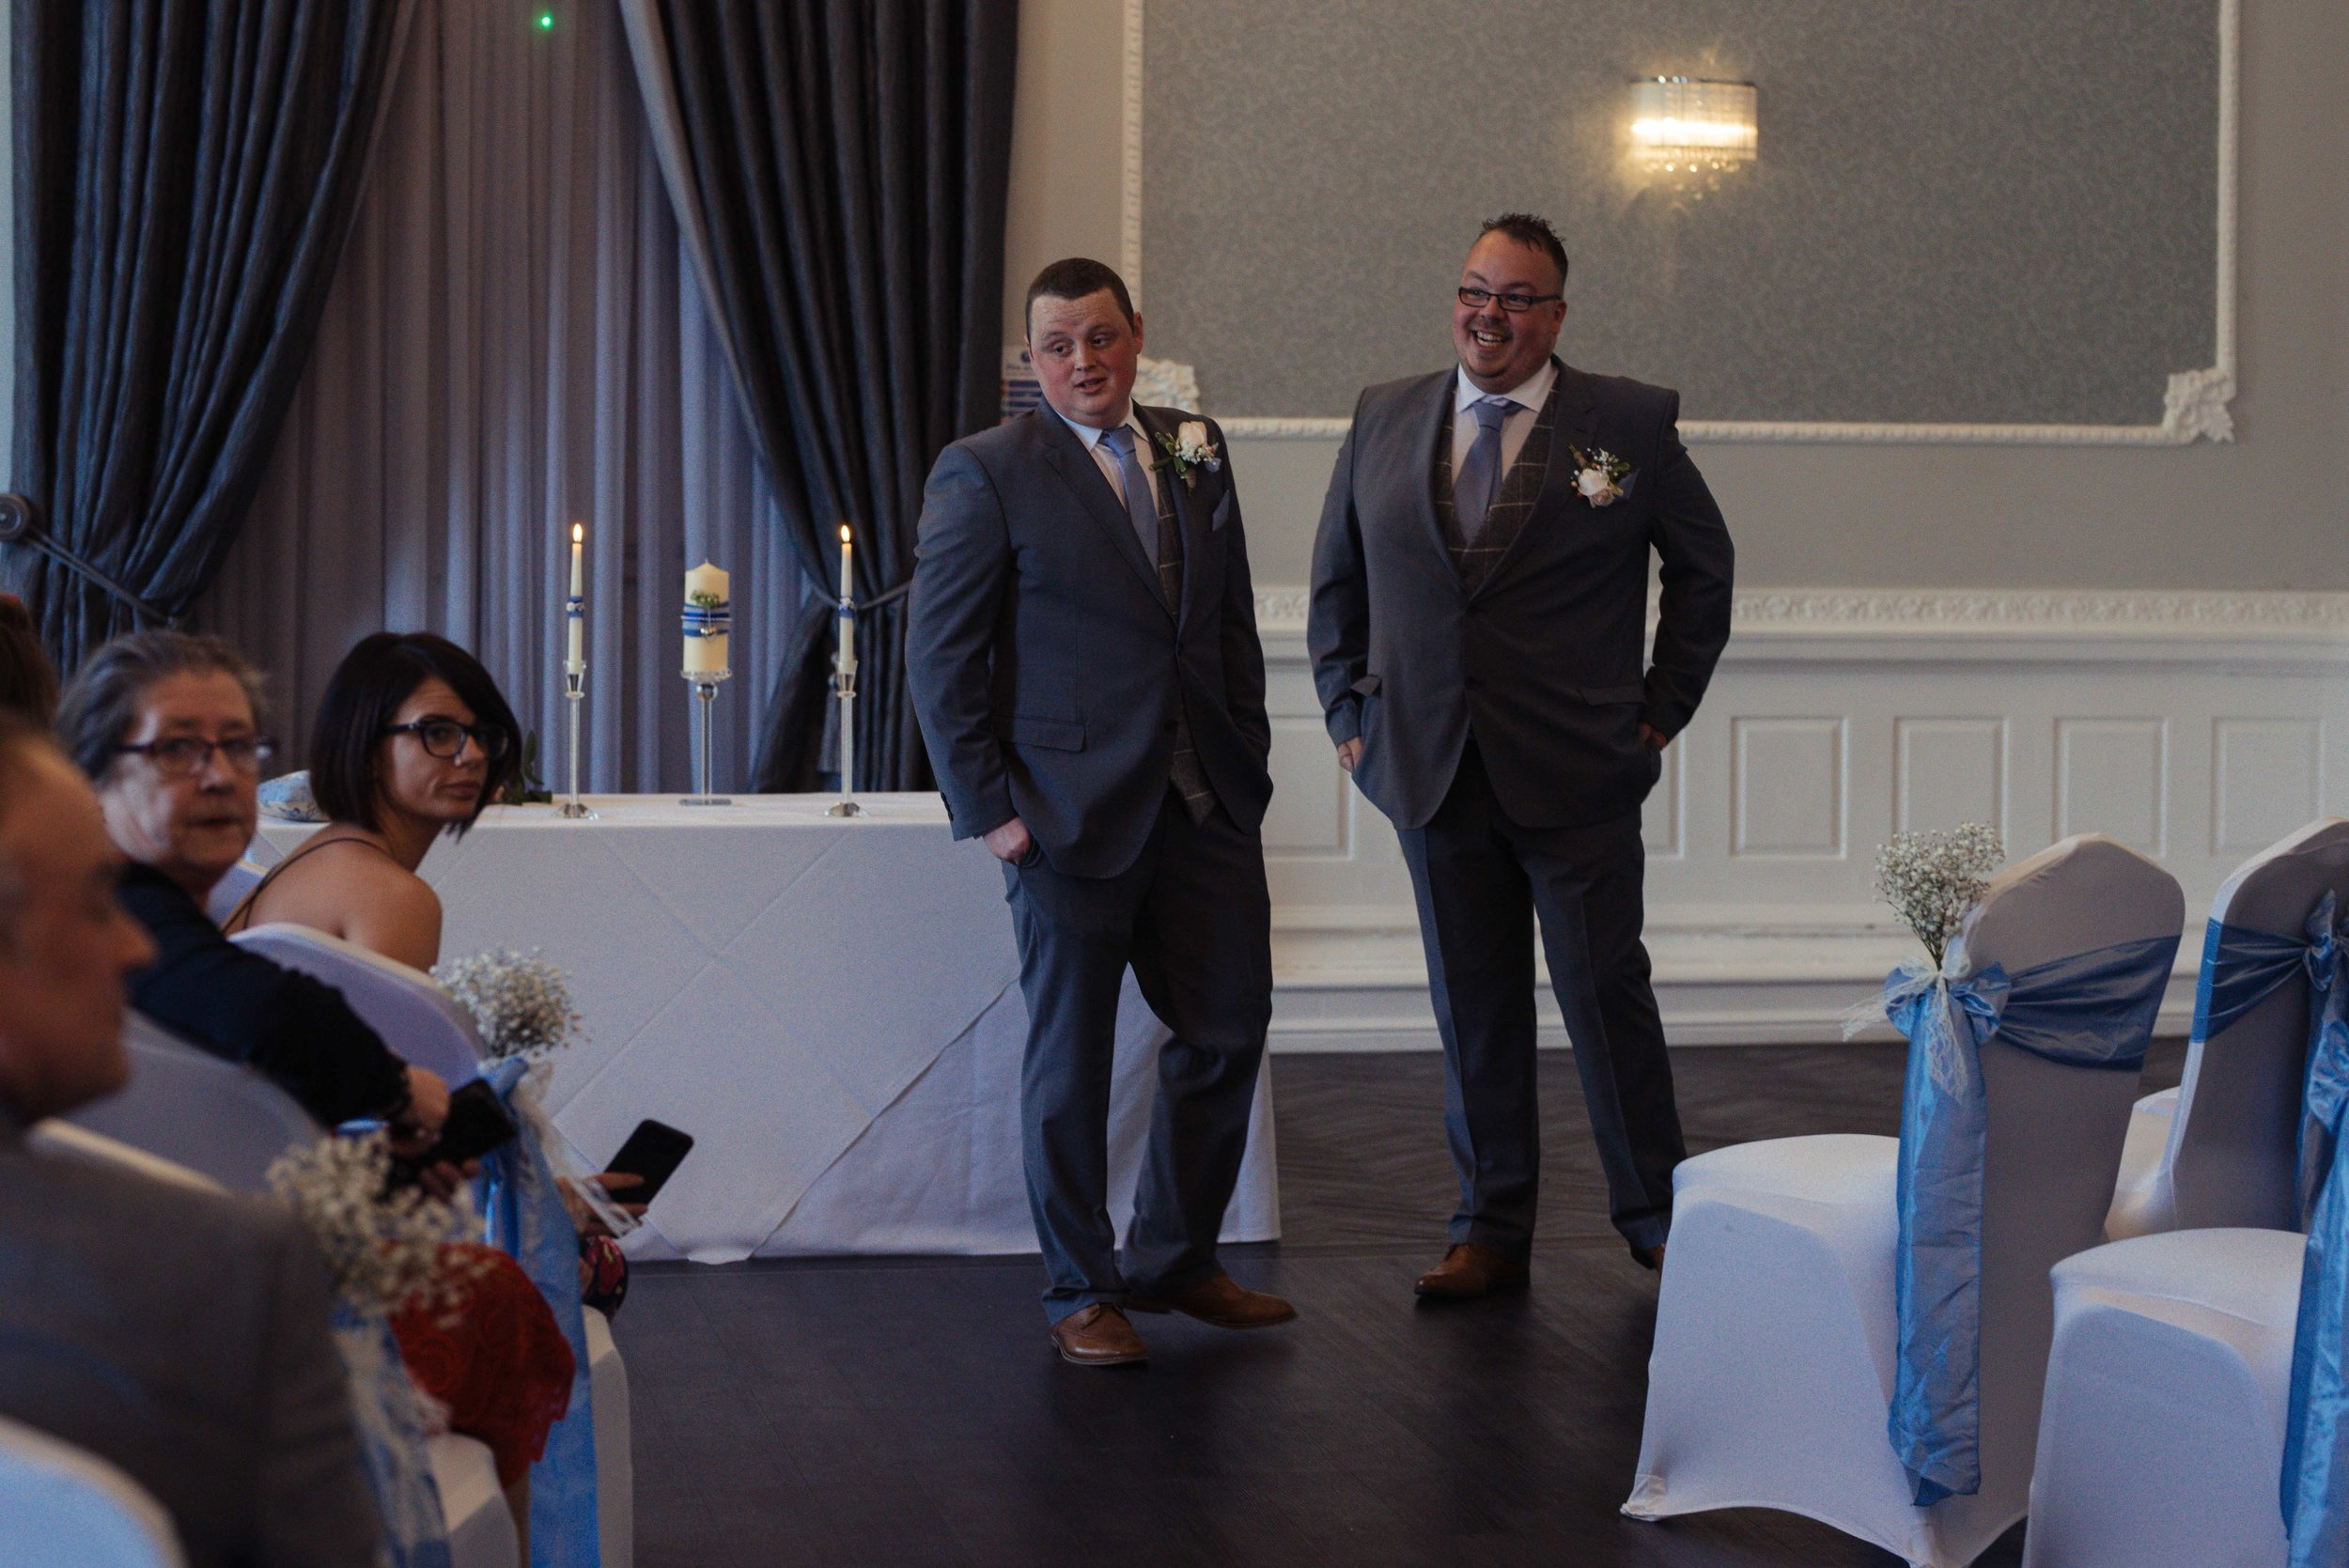 The groom and best man stand at the top of the aisle to wait for the bride.